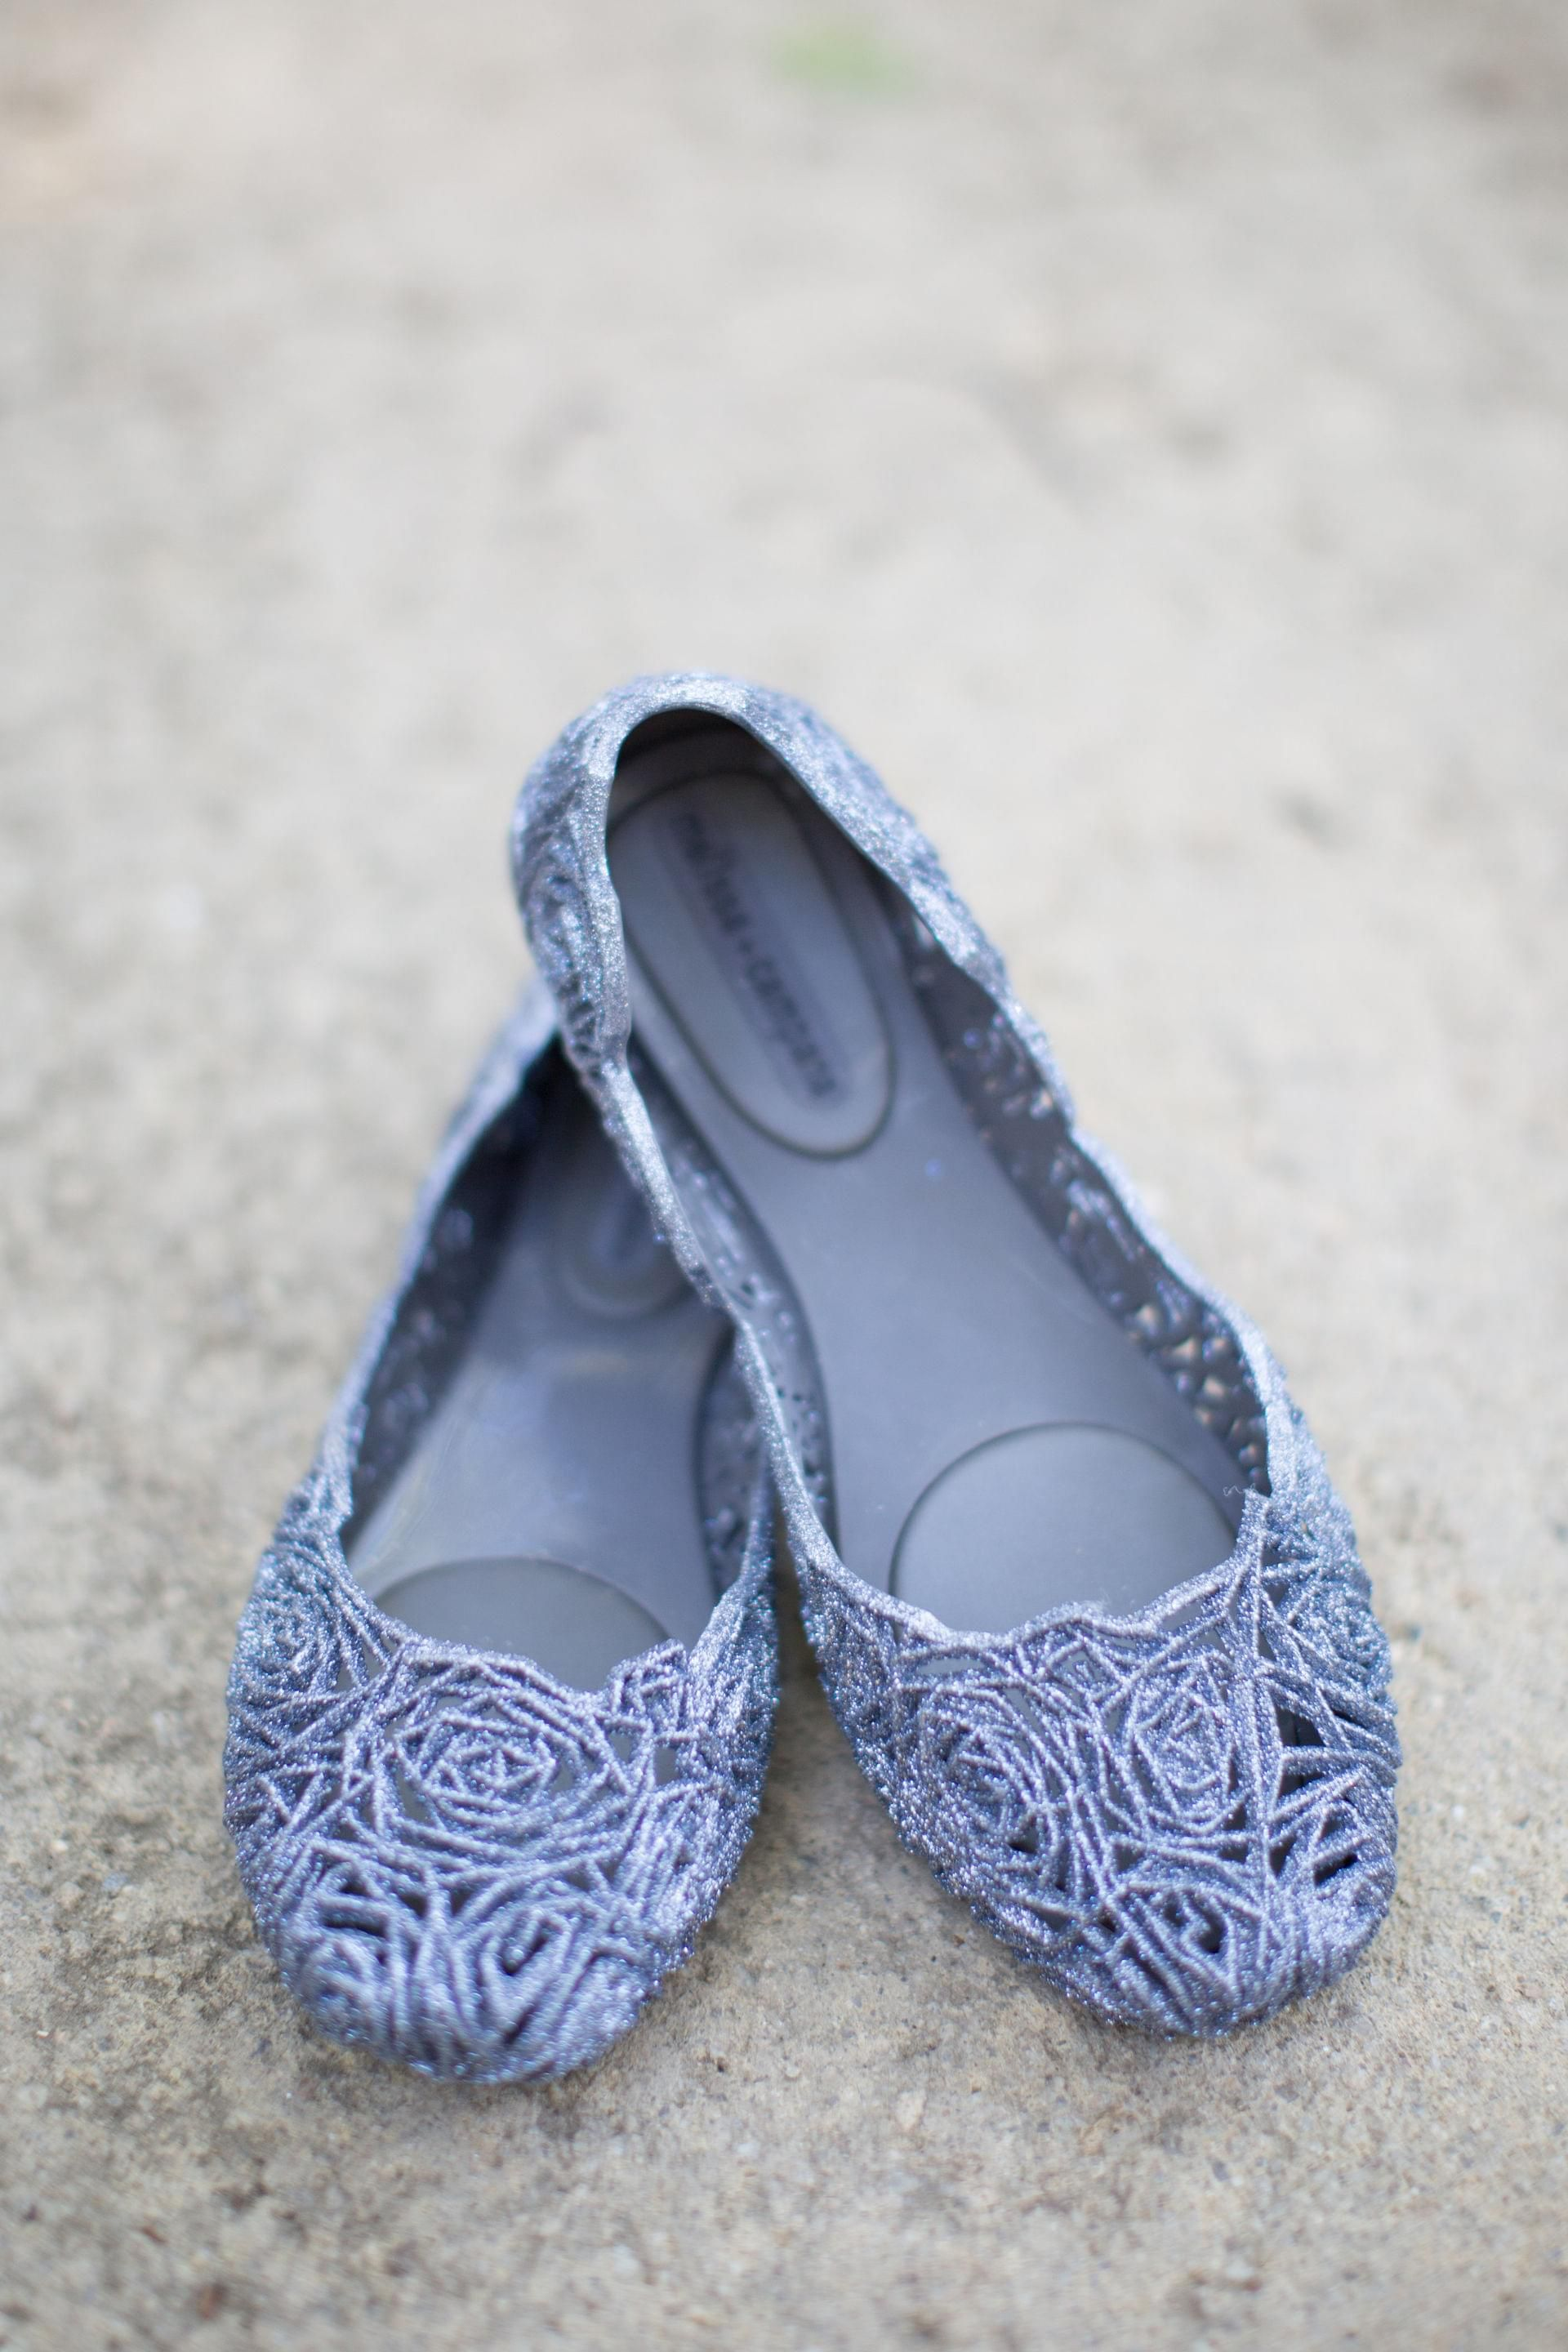 discover pinterest on comforter shoes evelyn wedding heels by about high ideas schickling pin comfortable